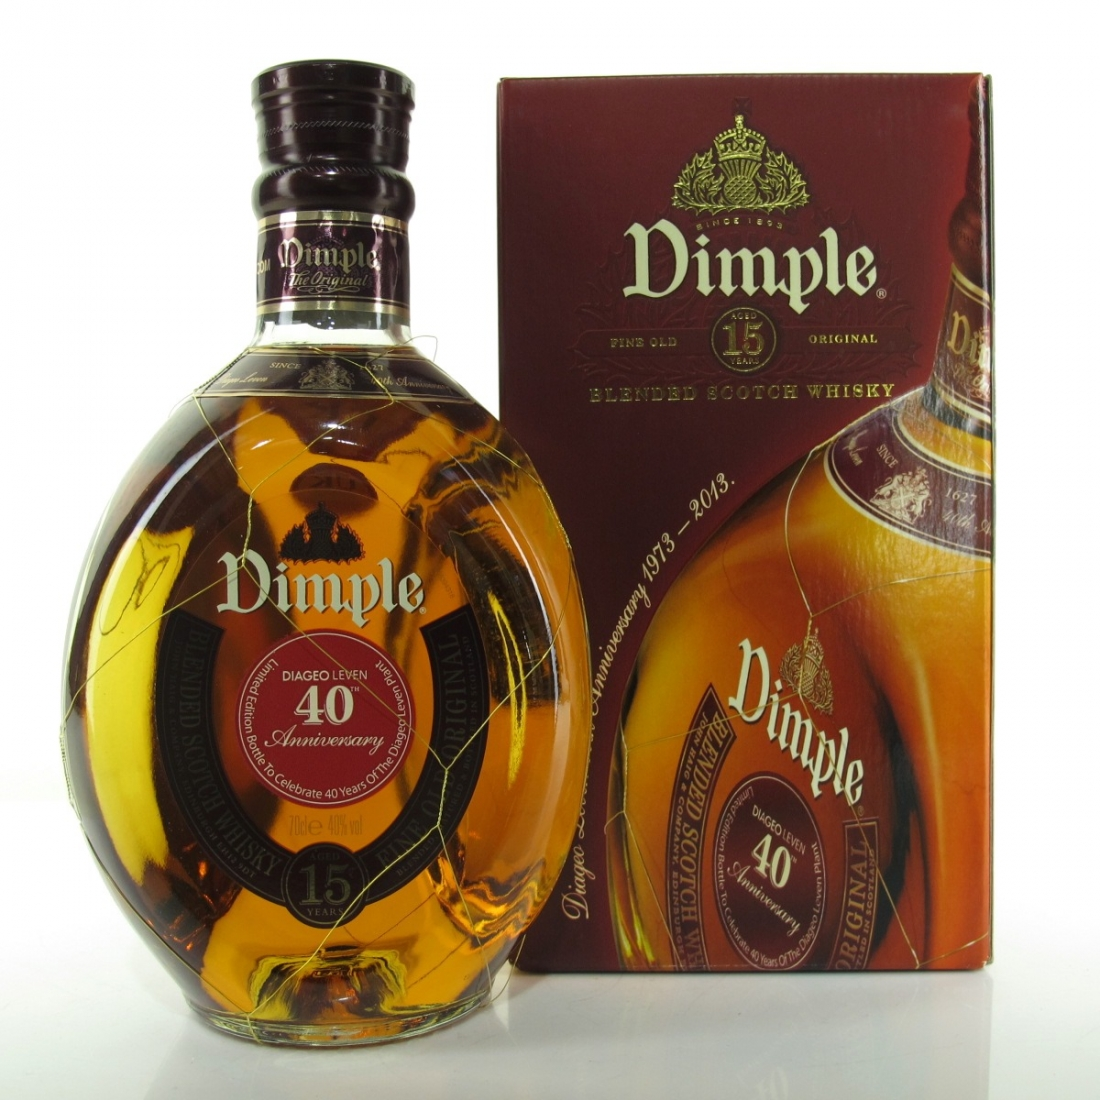 Dimple 15 Year Old / 40th Anniversary Diageo Leven 1973-2013